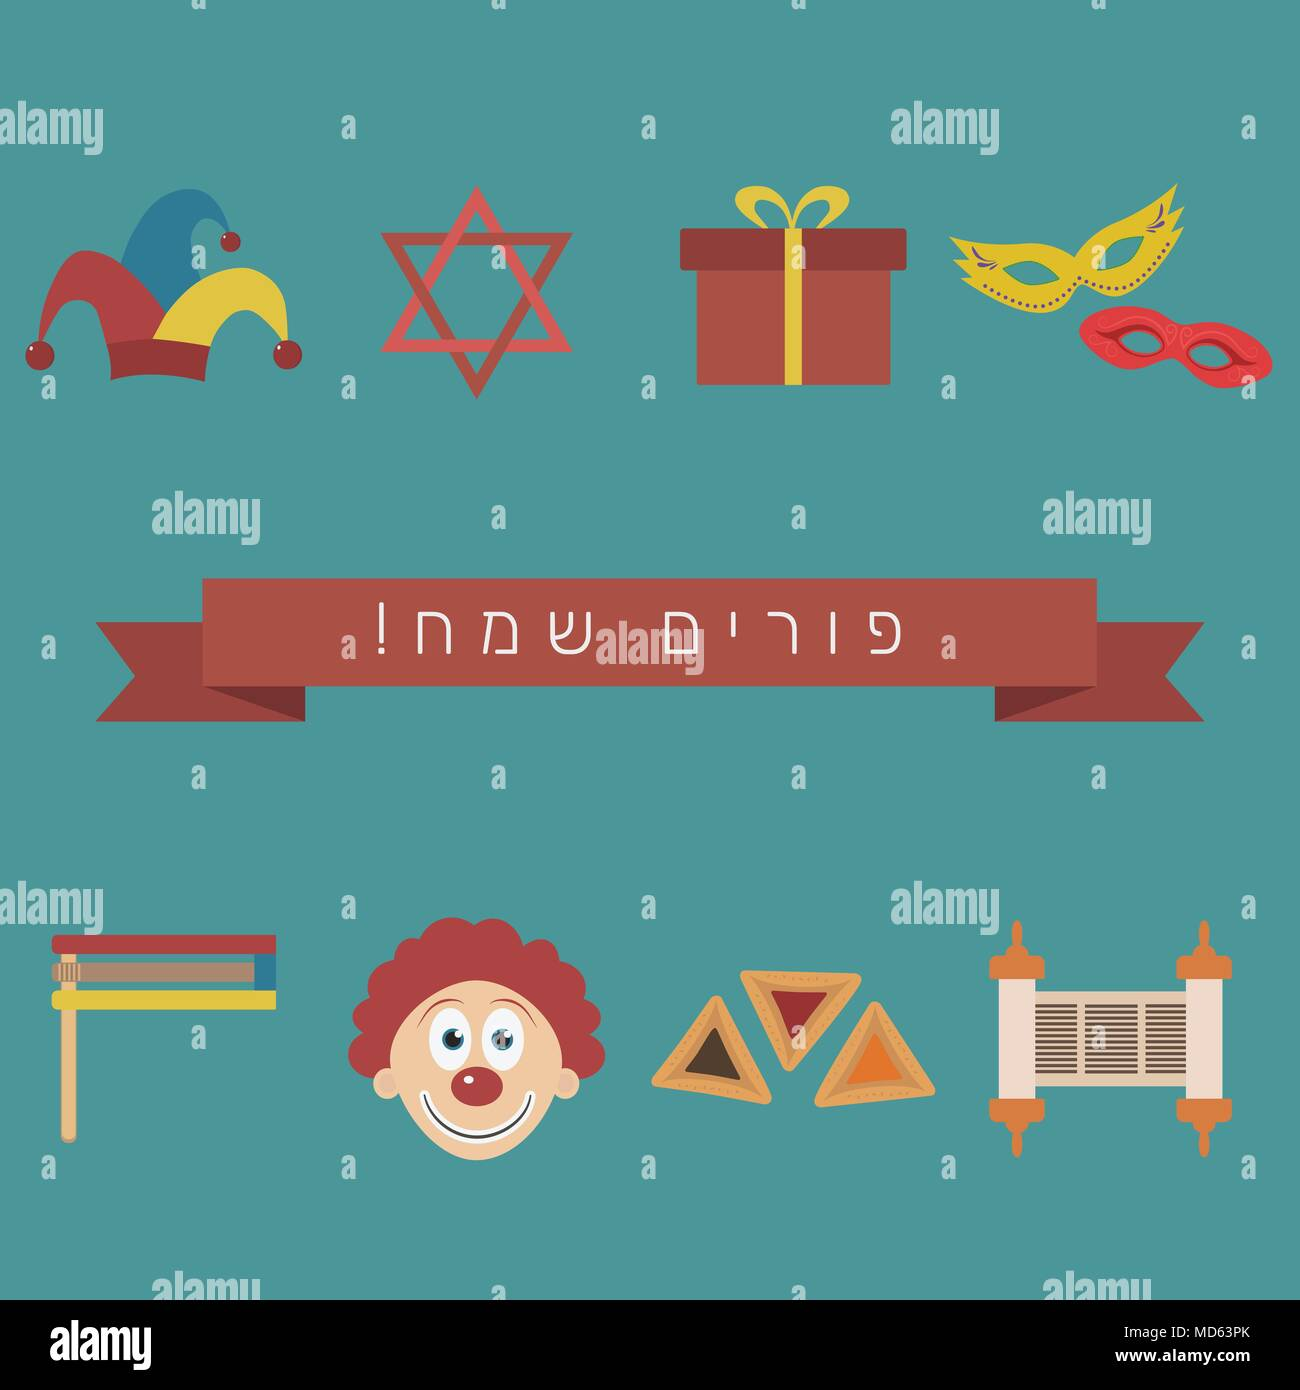 Purim holiday flat design icons set with text in hebrew Purim Sameach meaning Happy Purim. Vector eps10 illustration. Stock Vector